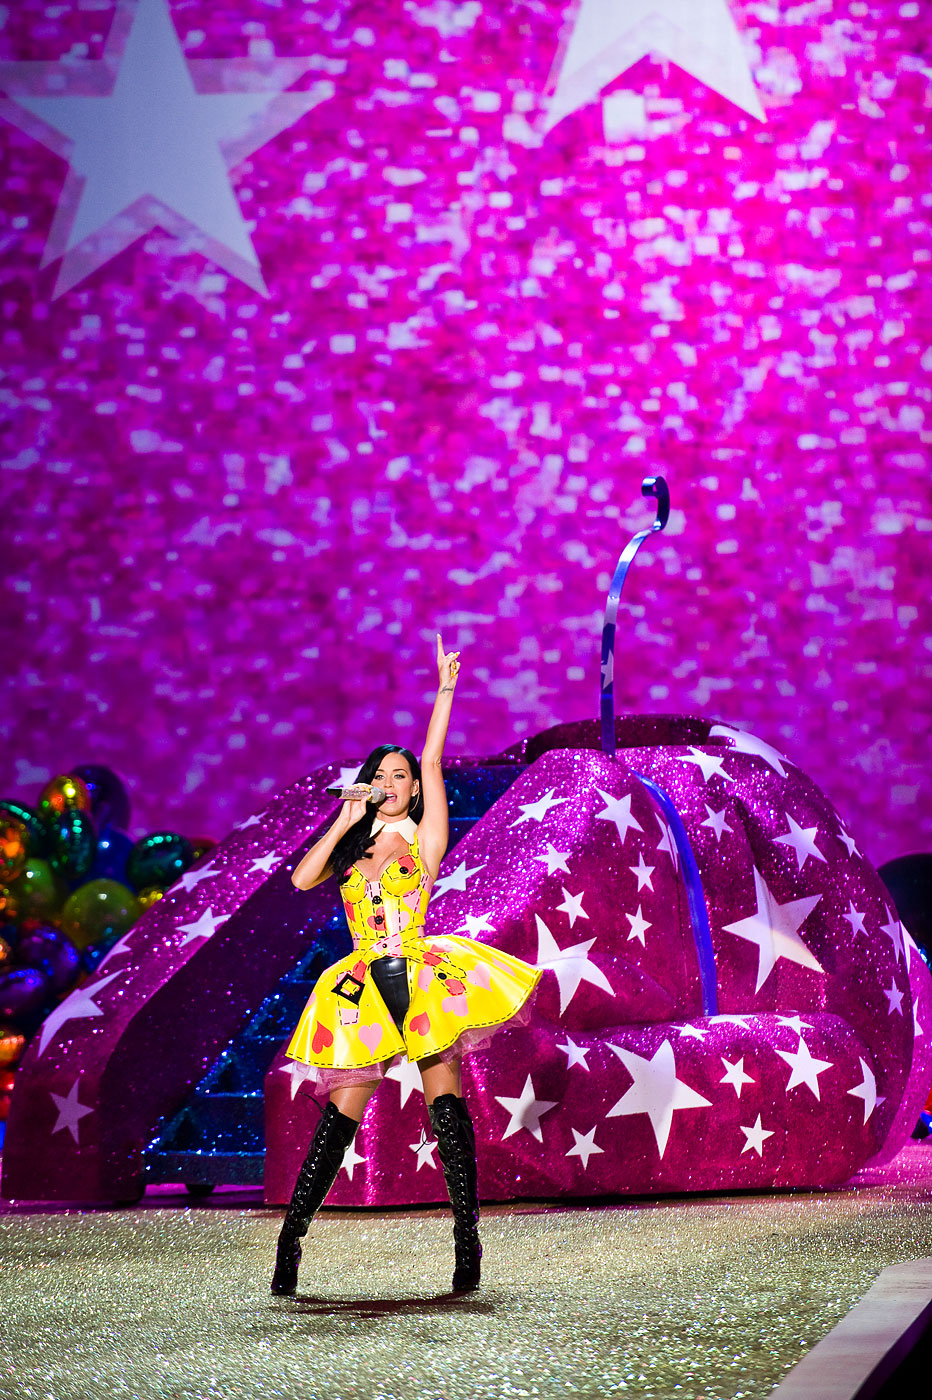 Katy Perry performs in the 2010 Victoria's Secret Fashion Show in New York.